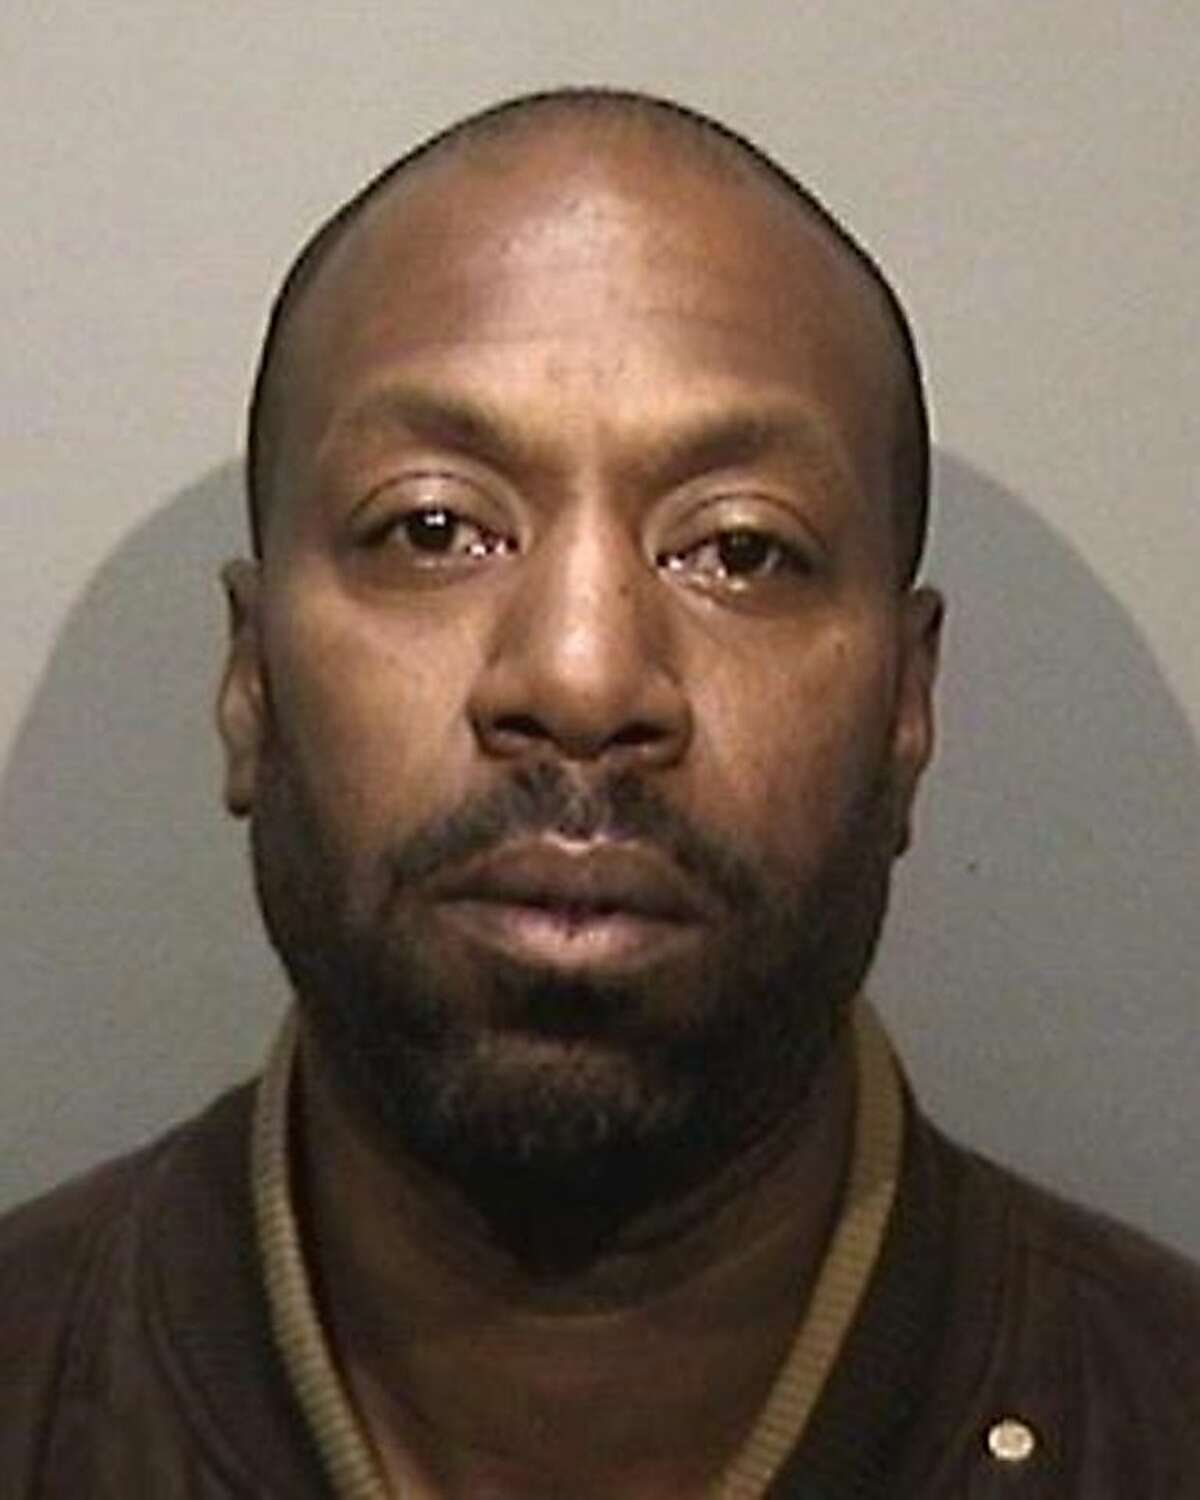 FILE - This booking photo provided by the Alameda County Sheriff's Department shows 45-year-old Andre Taray Franklin, who police arrested Sunday, March 3, 2013 in connection with the theft of a Gold Rush-era jewelry box from the Oakland Museum of California. Franklin, a parolee, is facing federal charges in the theft, authorities said. Franklin apparently stole the artifact valued at $805,000 earlier this year, sold it to a business owner for $1,500 and then threatened to report the owner to police if he didn't give him another $10,000, according to a criminal complaint filed last week in U.S. District Court in Oakland. (AP Photo/Alameda County Sheriff's Department)